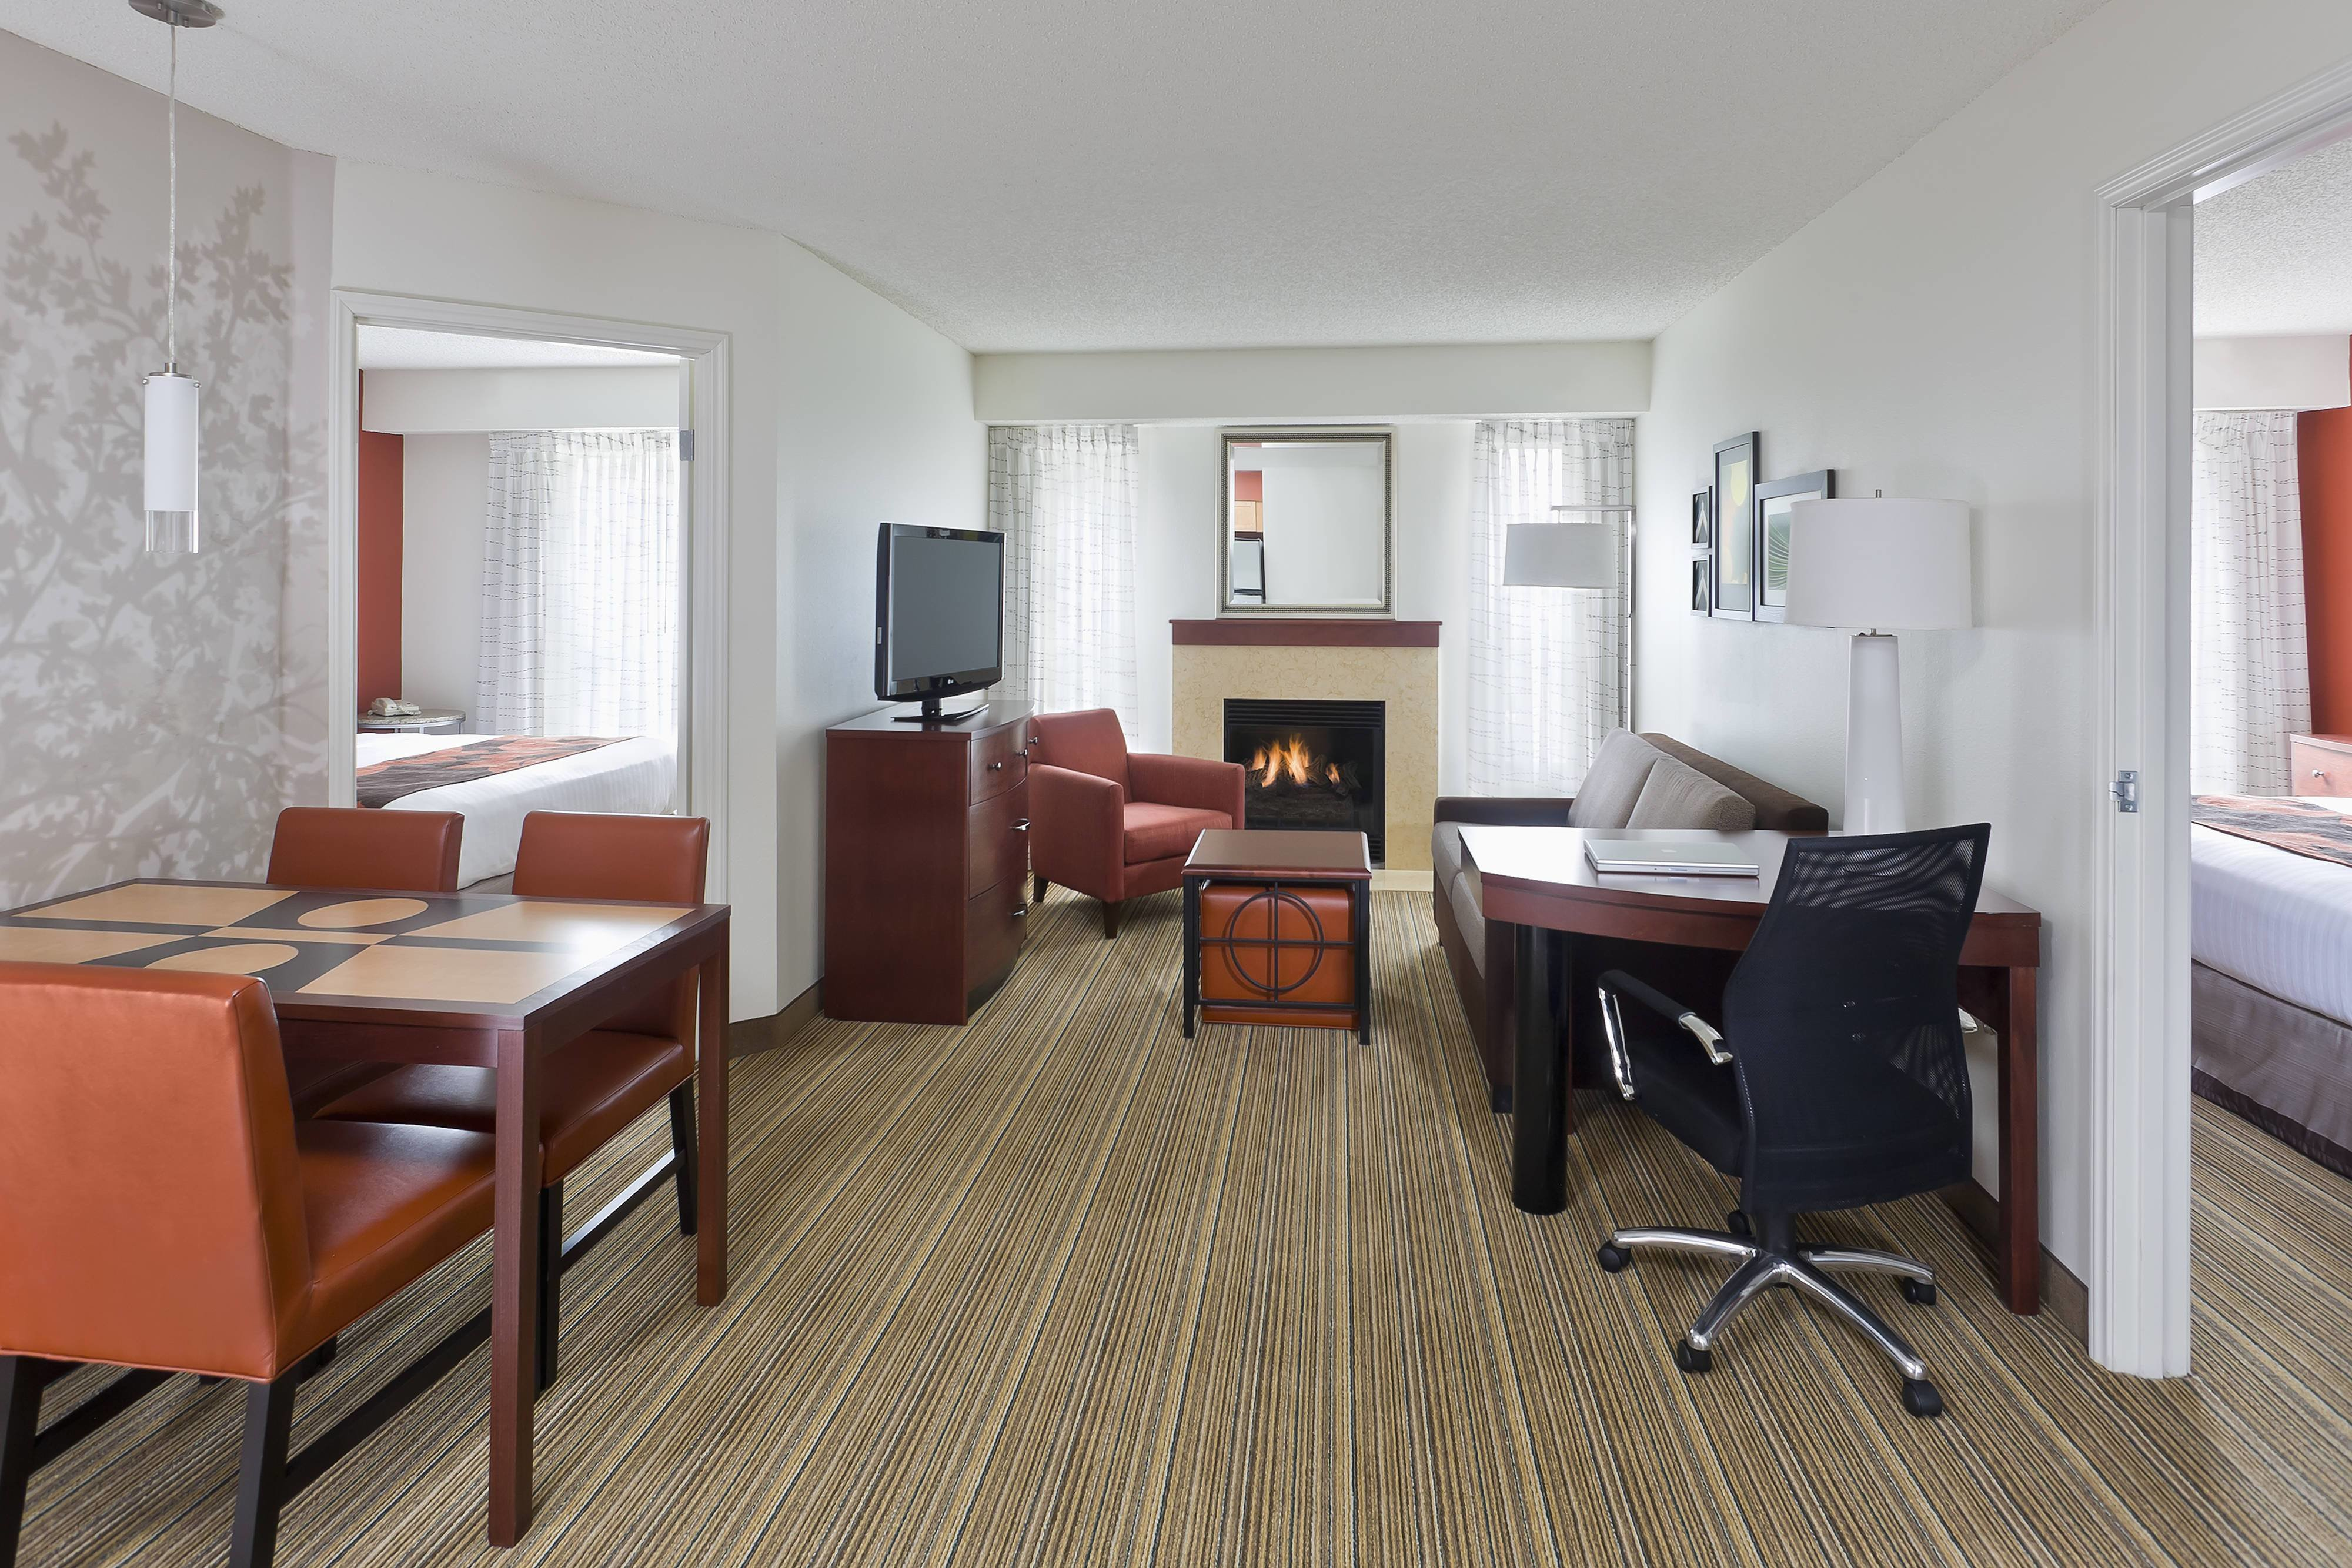 Best Hotels In Lewisville Tx Residence Inn Dallas Lewisville With Pictures